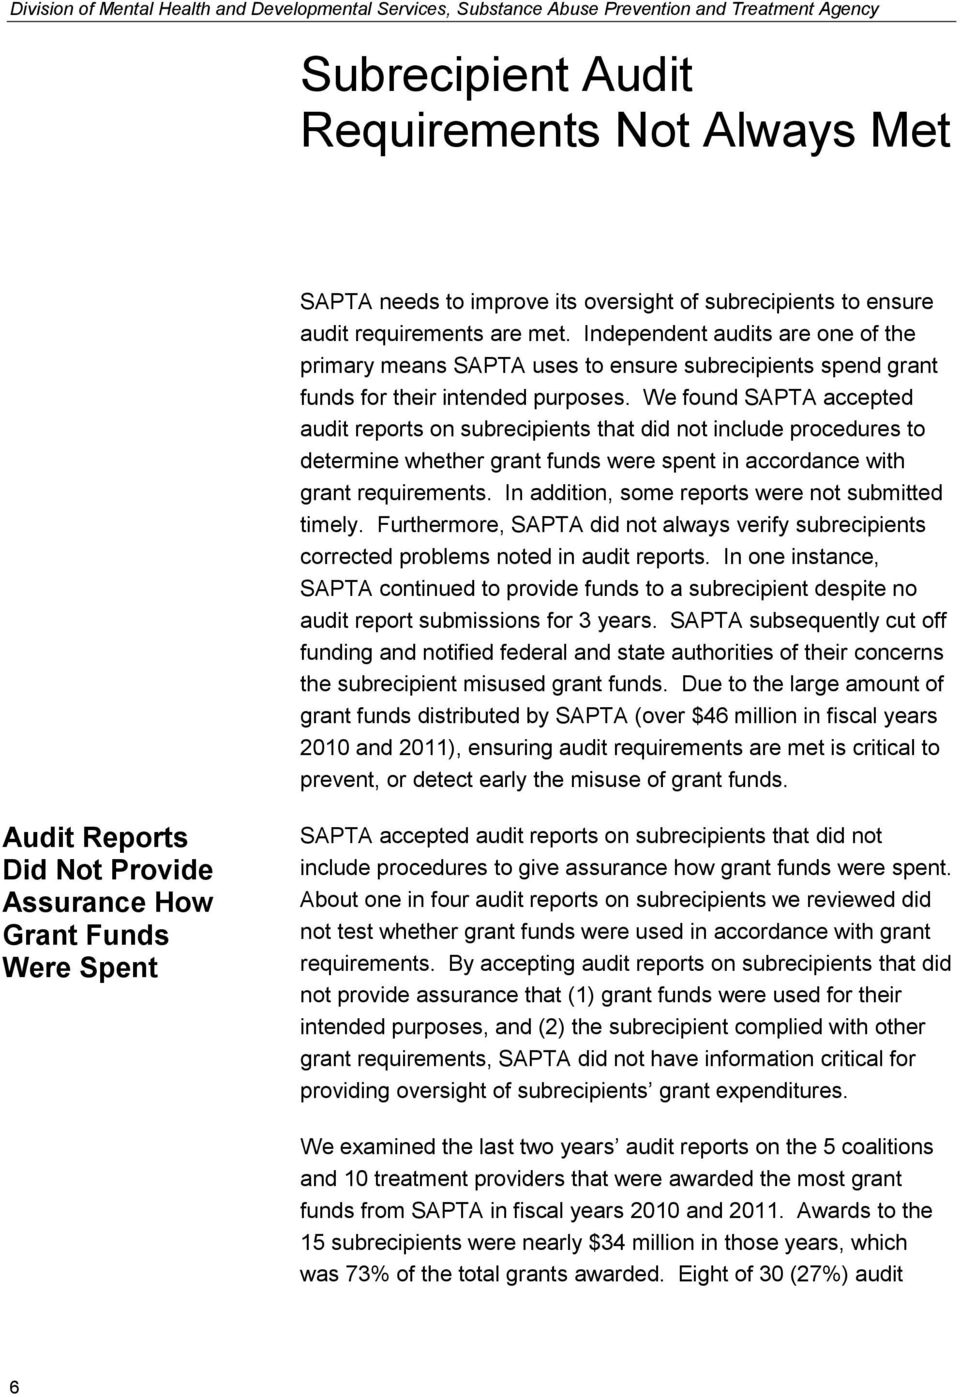 We found SAPTA accepted audit reports on subrecipients that did not include procedures to determine whether grant funds were spent in accordance with grant requirements.